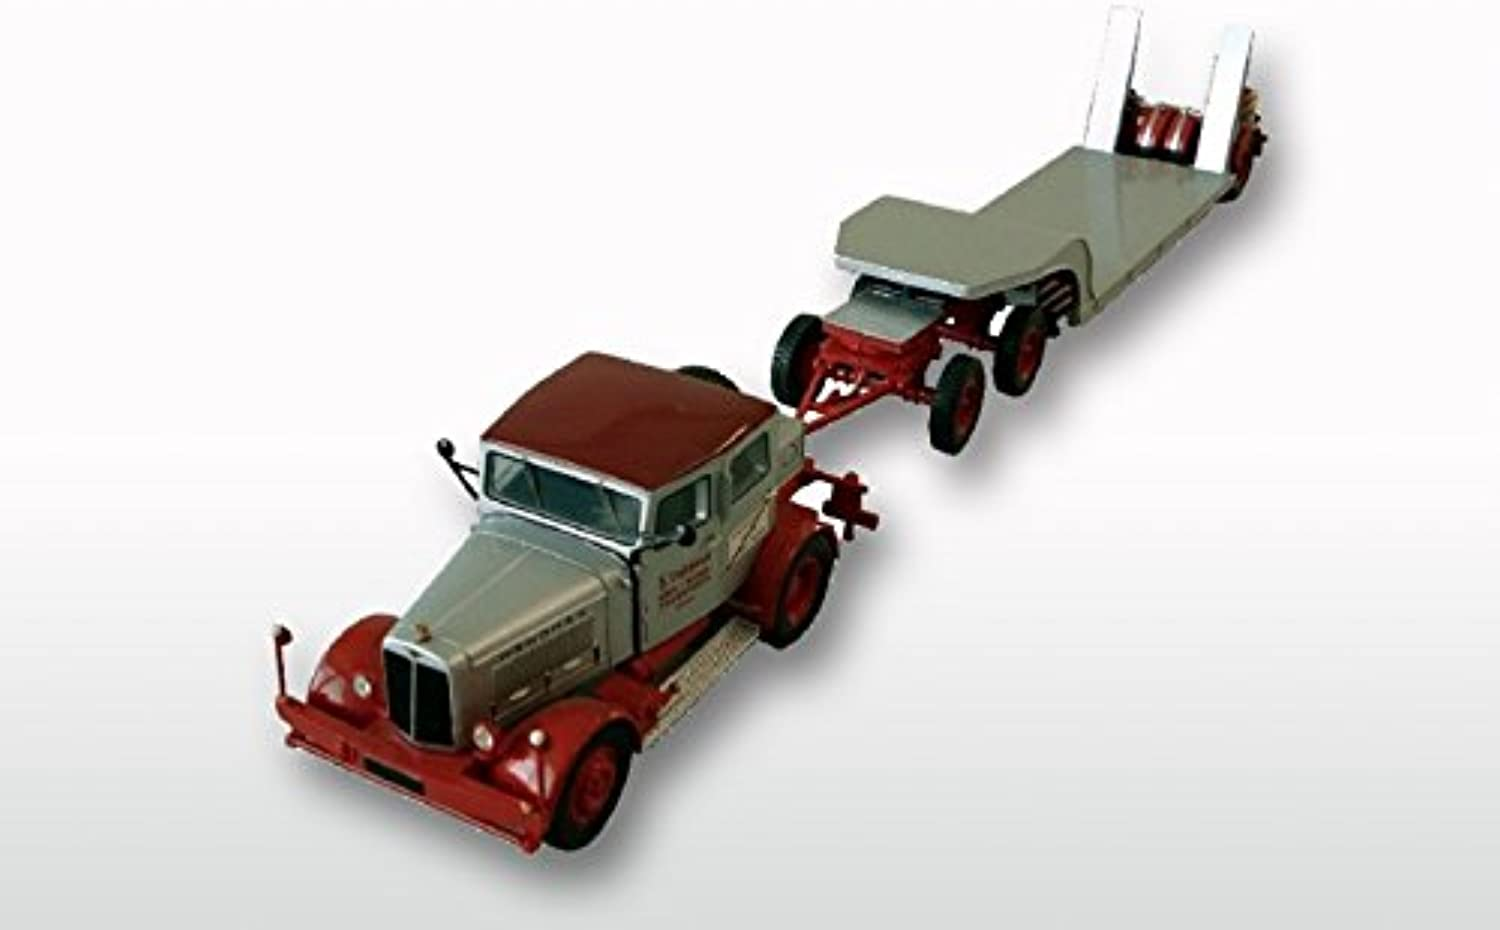 GMTS  G0003910  Hanomag SS 100 with low loader 1 50, limitied Resinmodel grey red